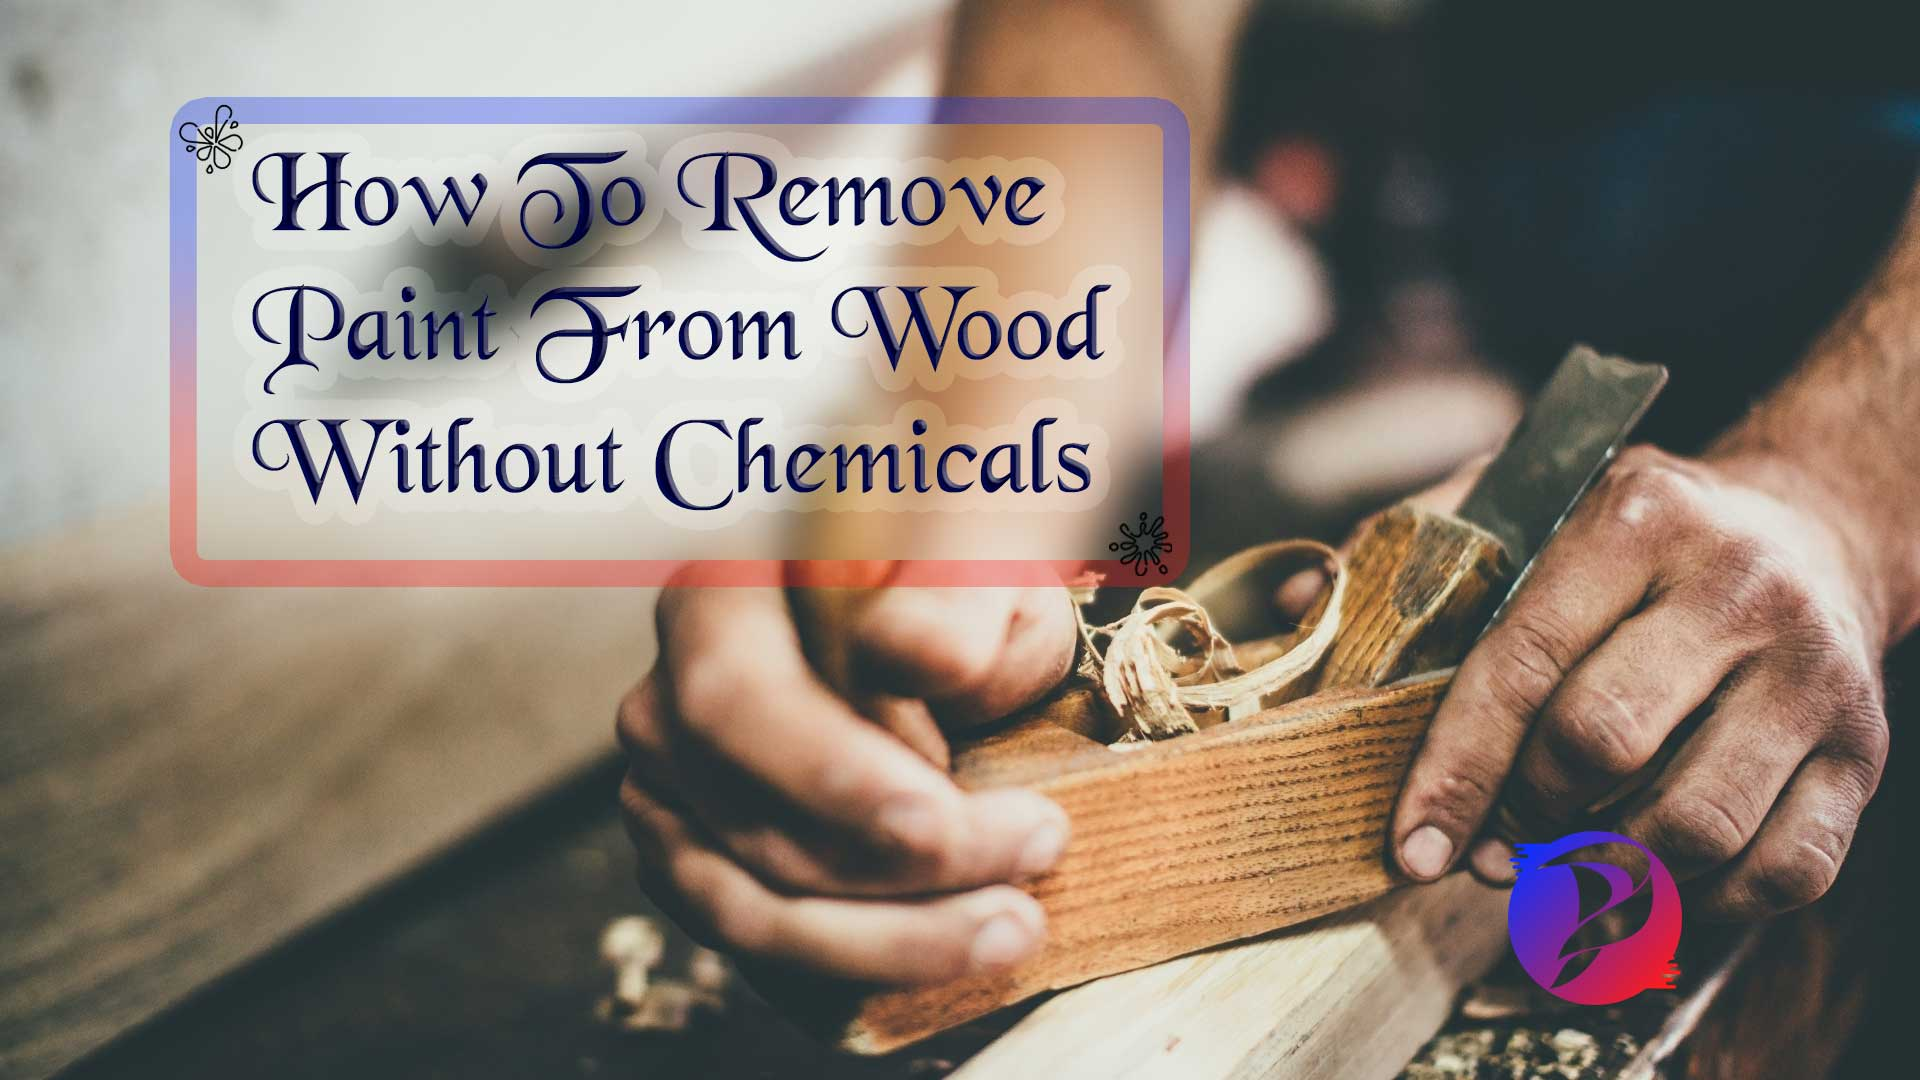 How to Remove Paint From Wood Without Chemicals